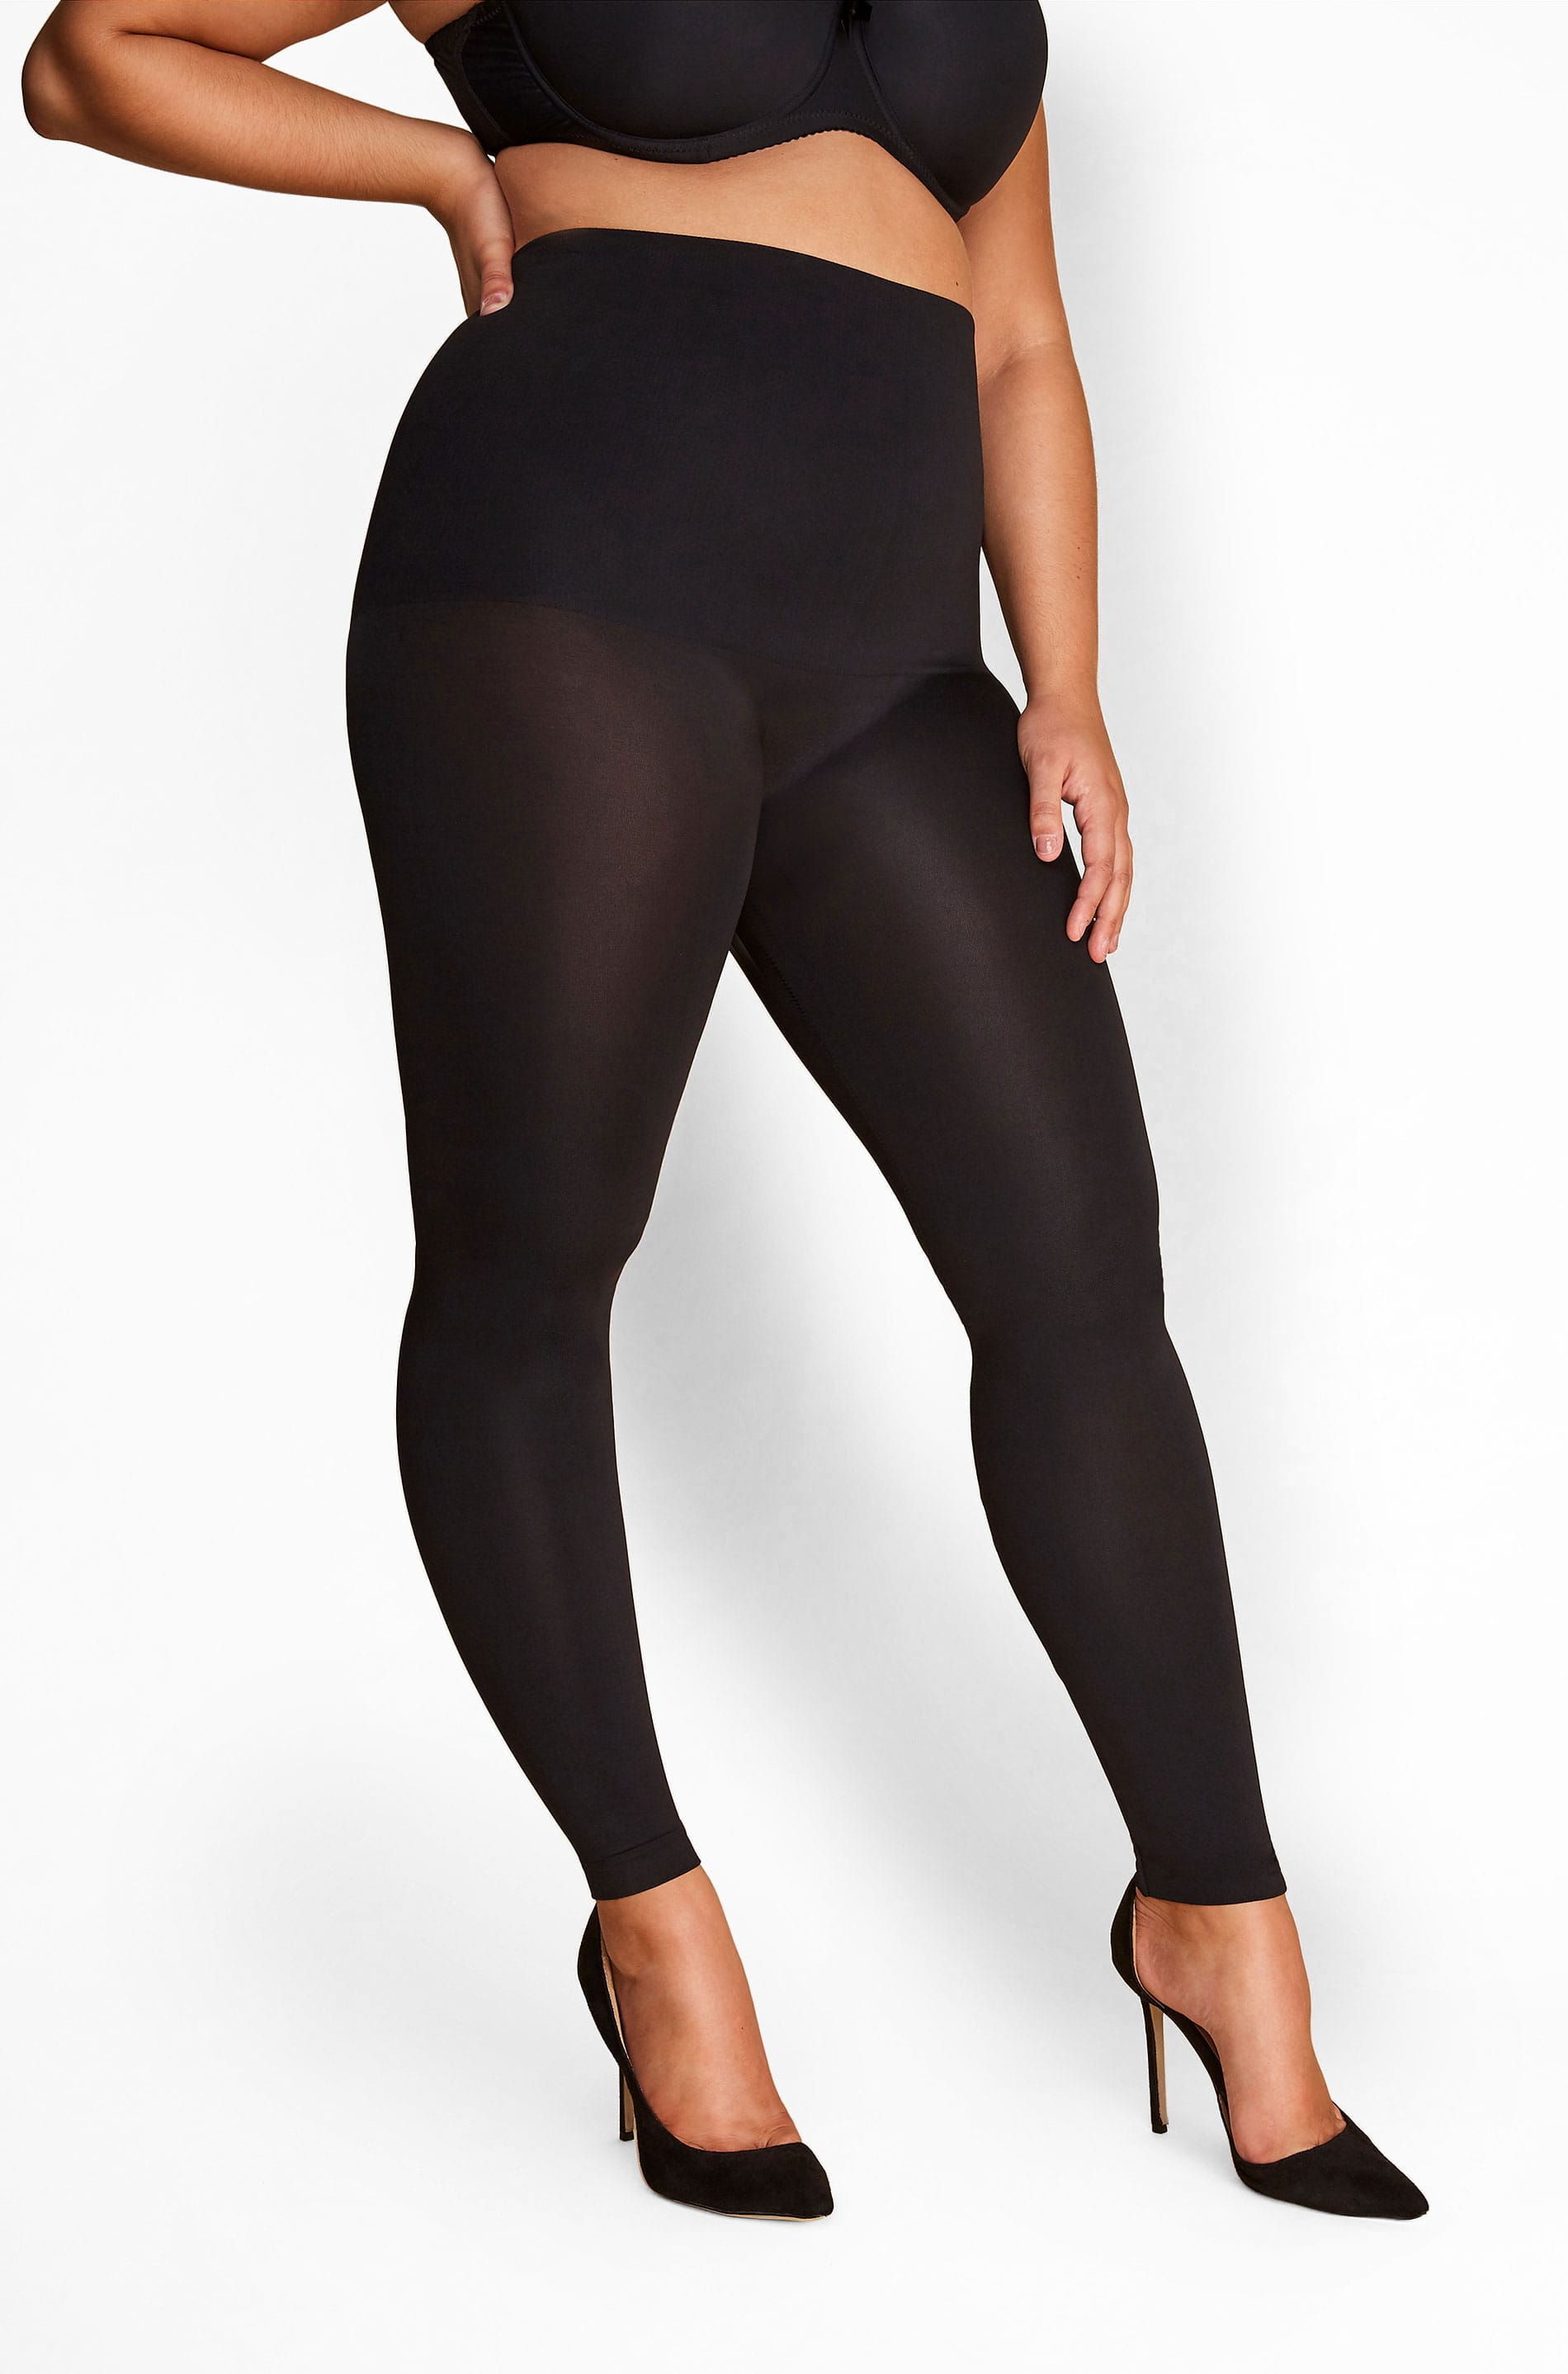 Figurformende Leggings - Schwarz